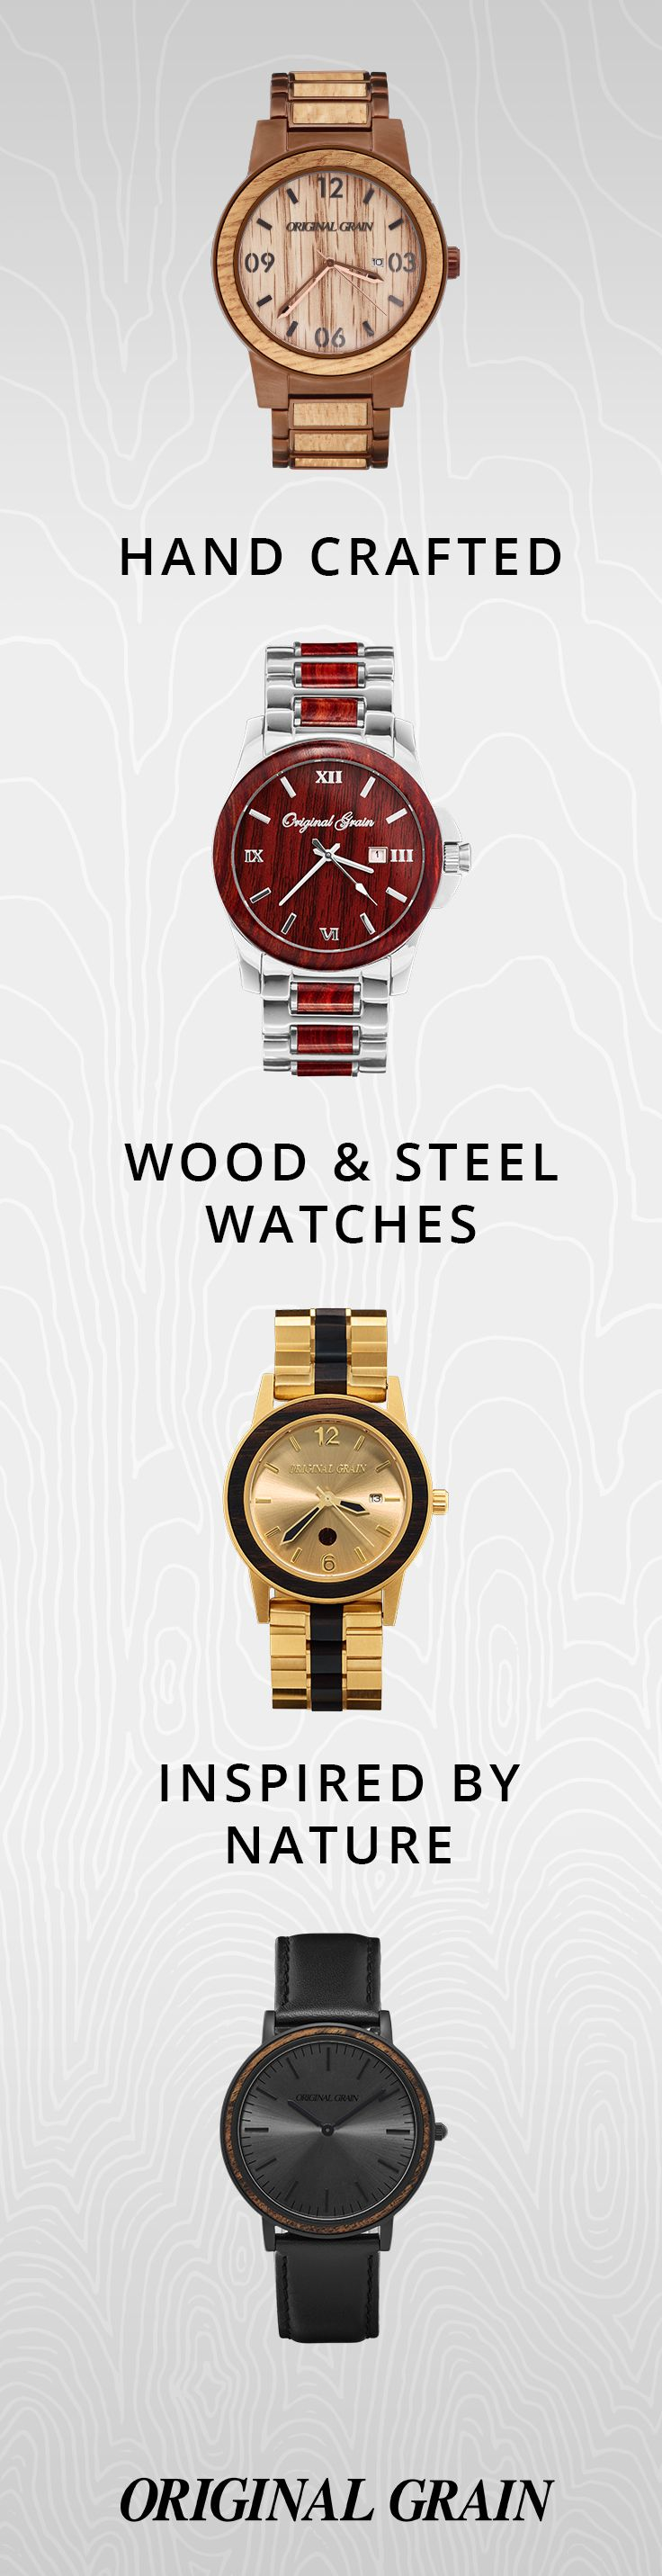 fashionistas best watches studio fashion eluxe conscious the stubus for wood watch img inlay magazine lebdev